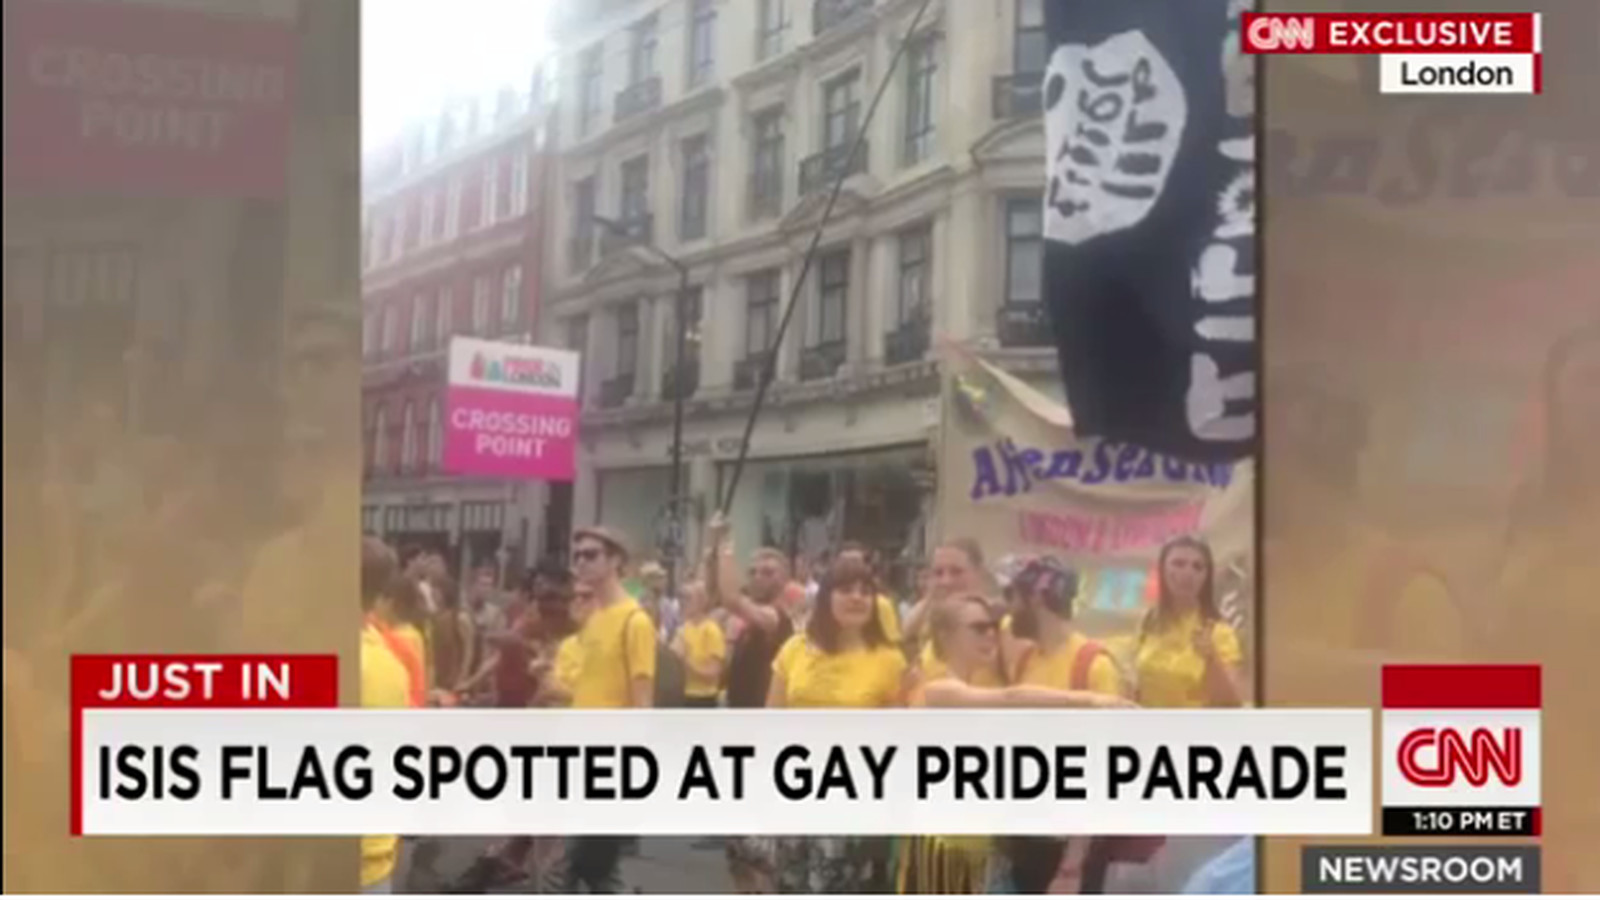 Cnns Most Embarrassing Flub Ever The Isis Dildo Gay -9072